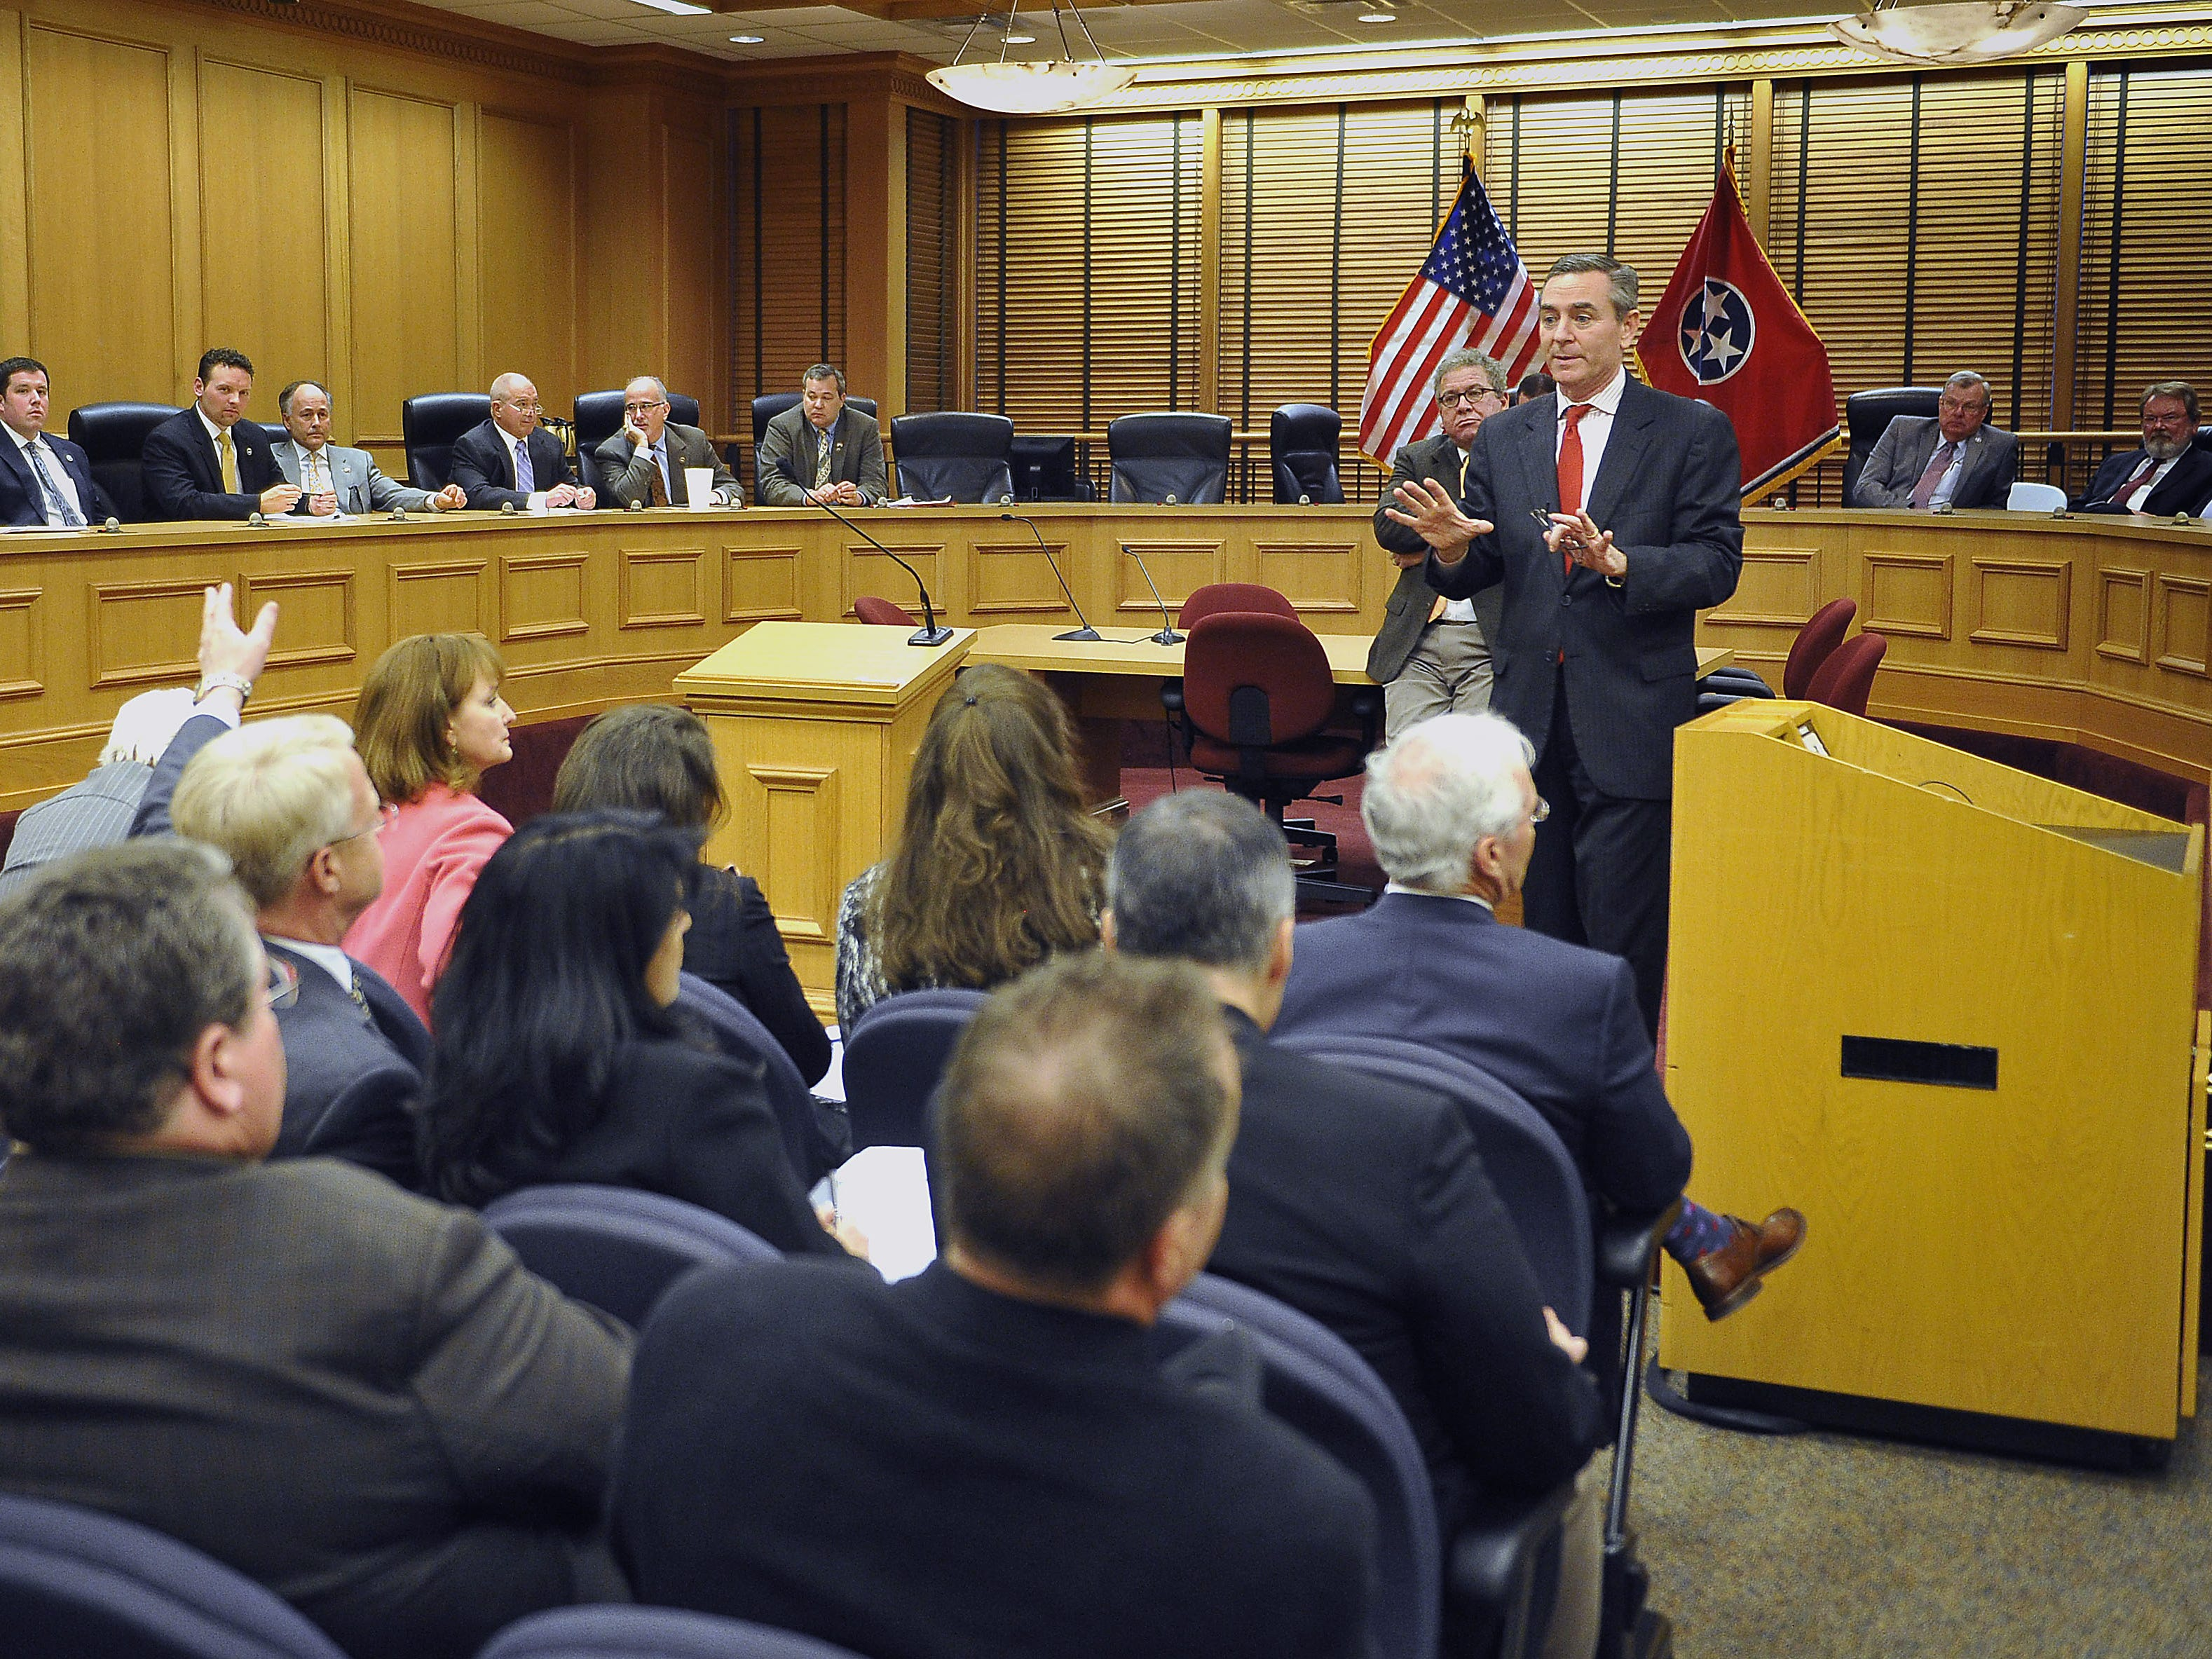 House GOP Caucus Chairman Glen Casada, R-Franklin, standing right, fills in other legislators about what was announced to the media earlier in the day about Rep. Jeremy Durham, R-Franklin, on Jan. 25, 2016.